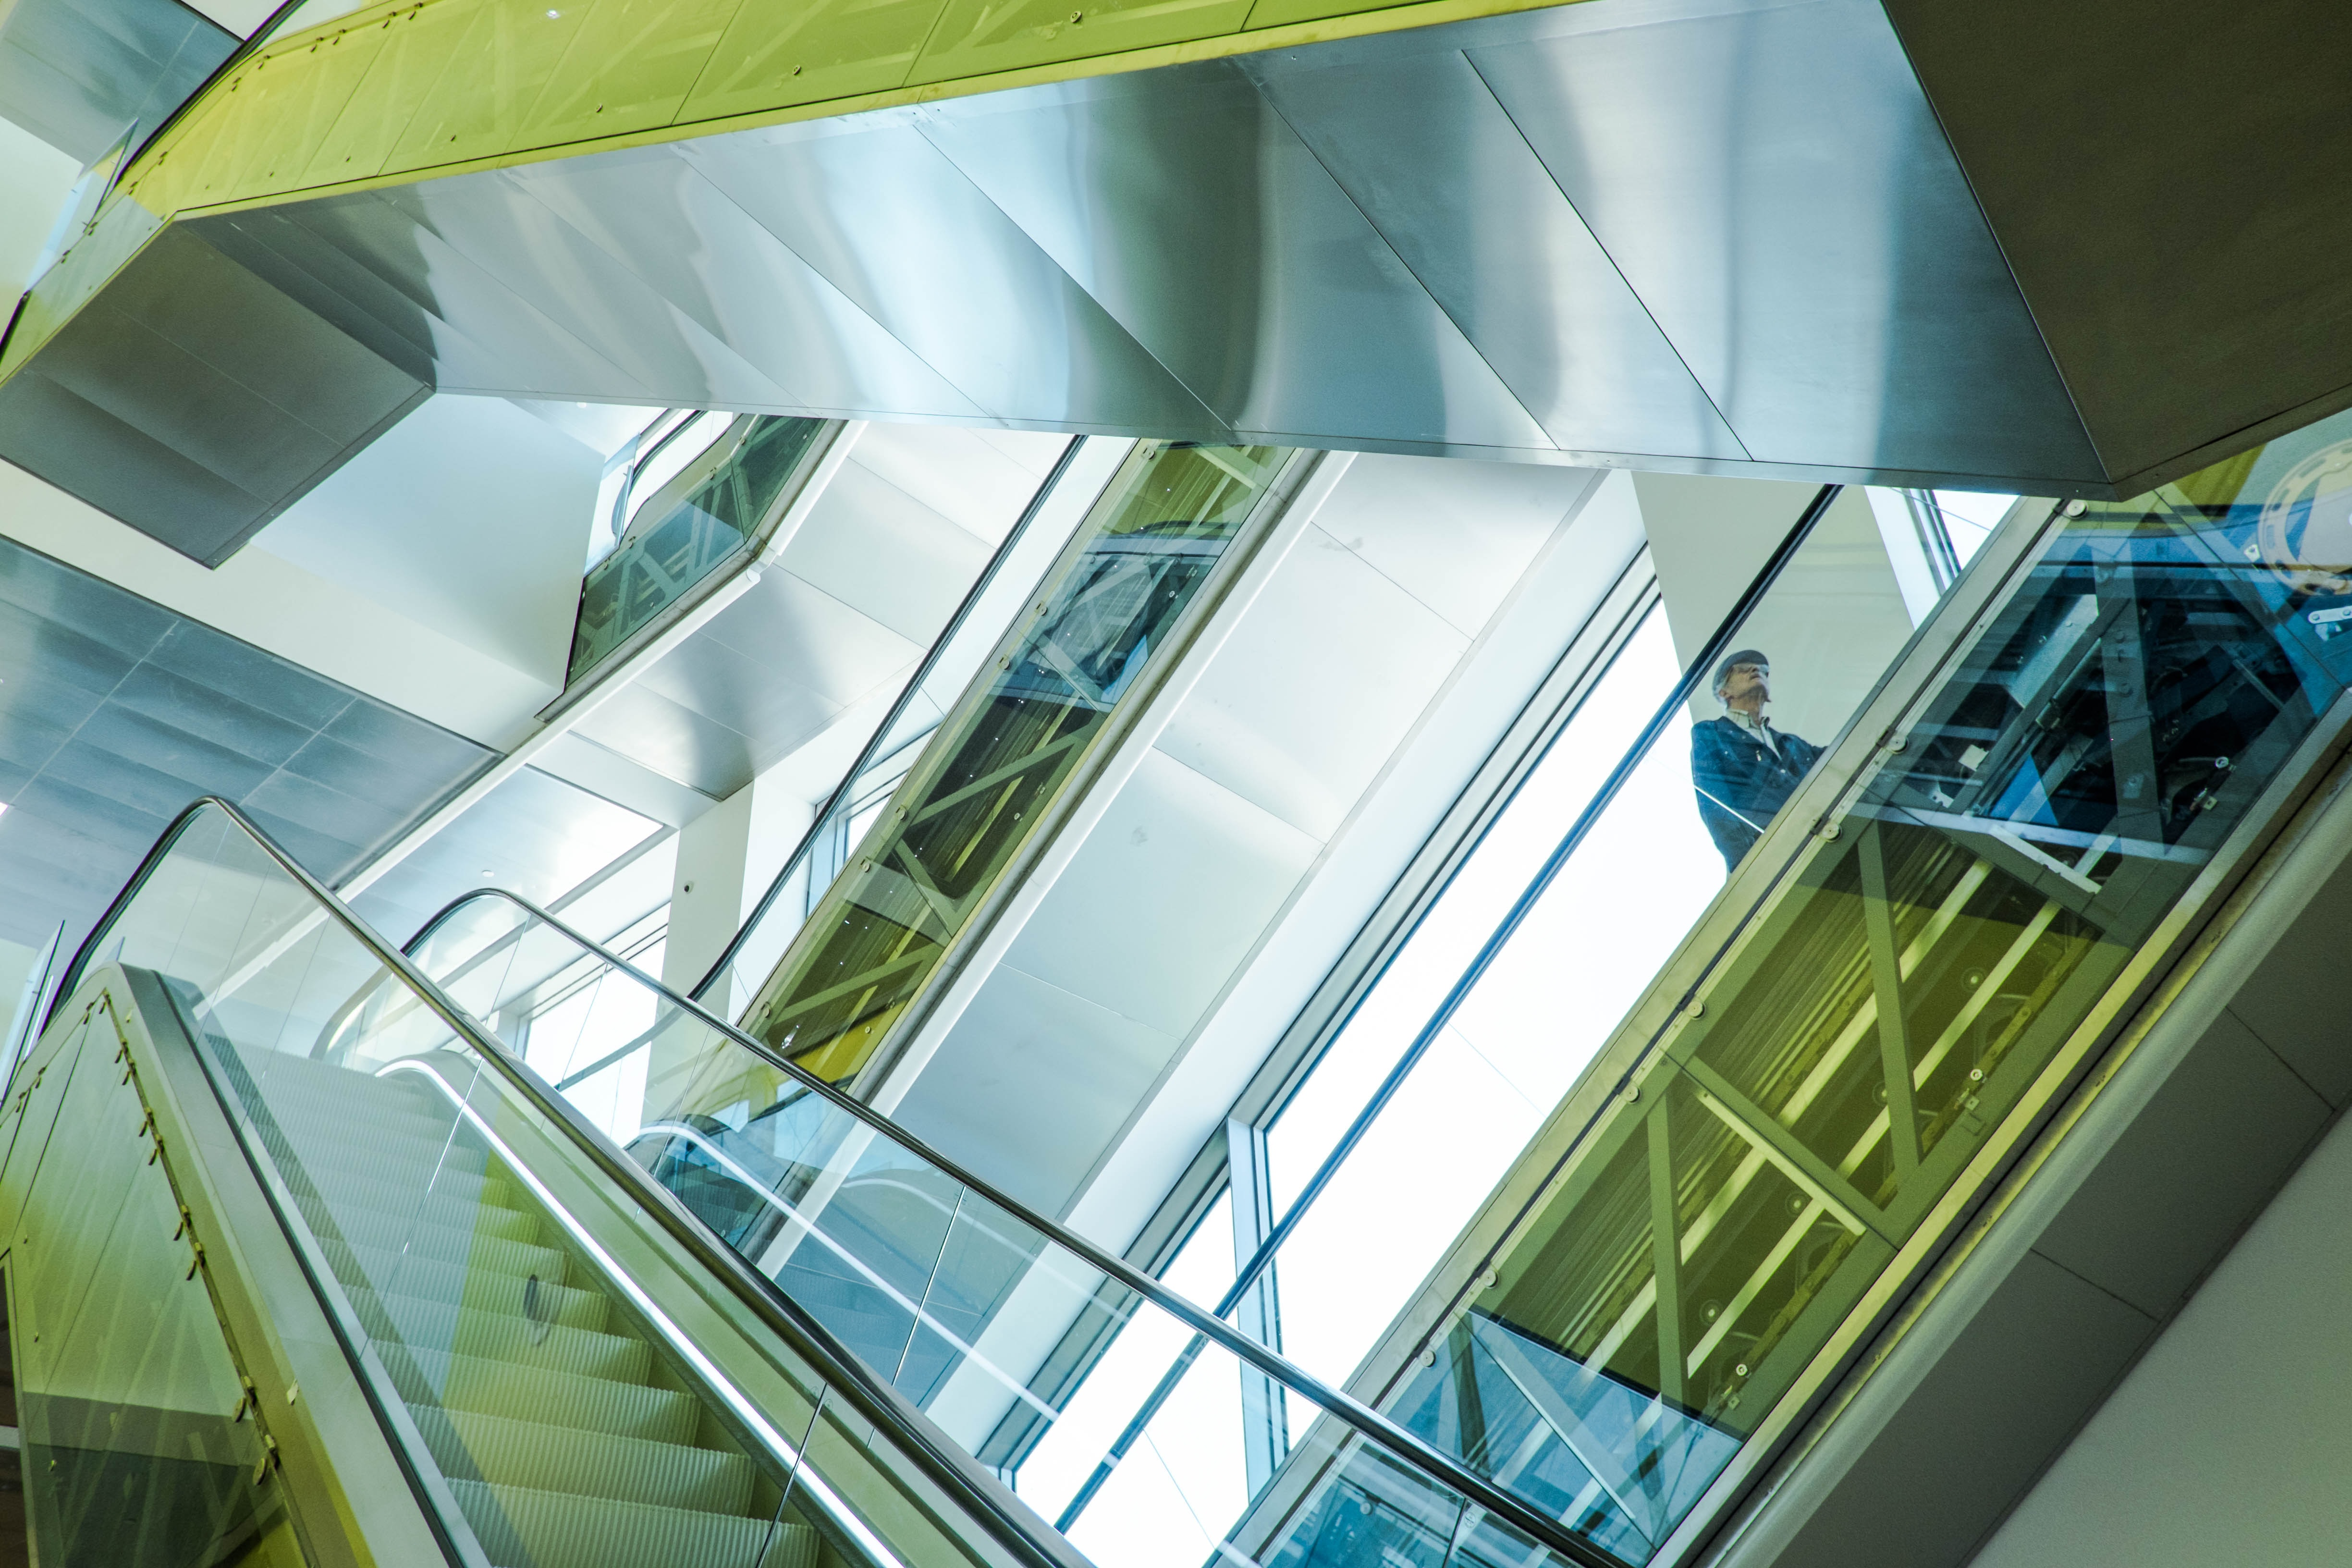 Colorful natural patterns formed by escalators inside a corporate office